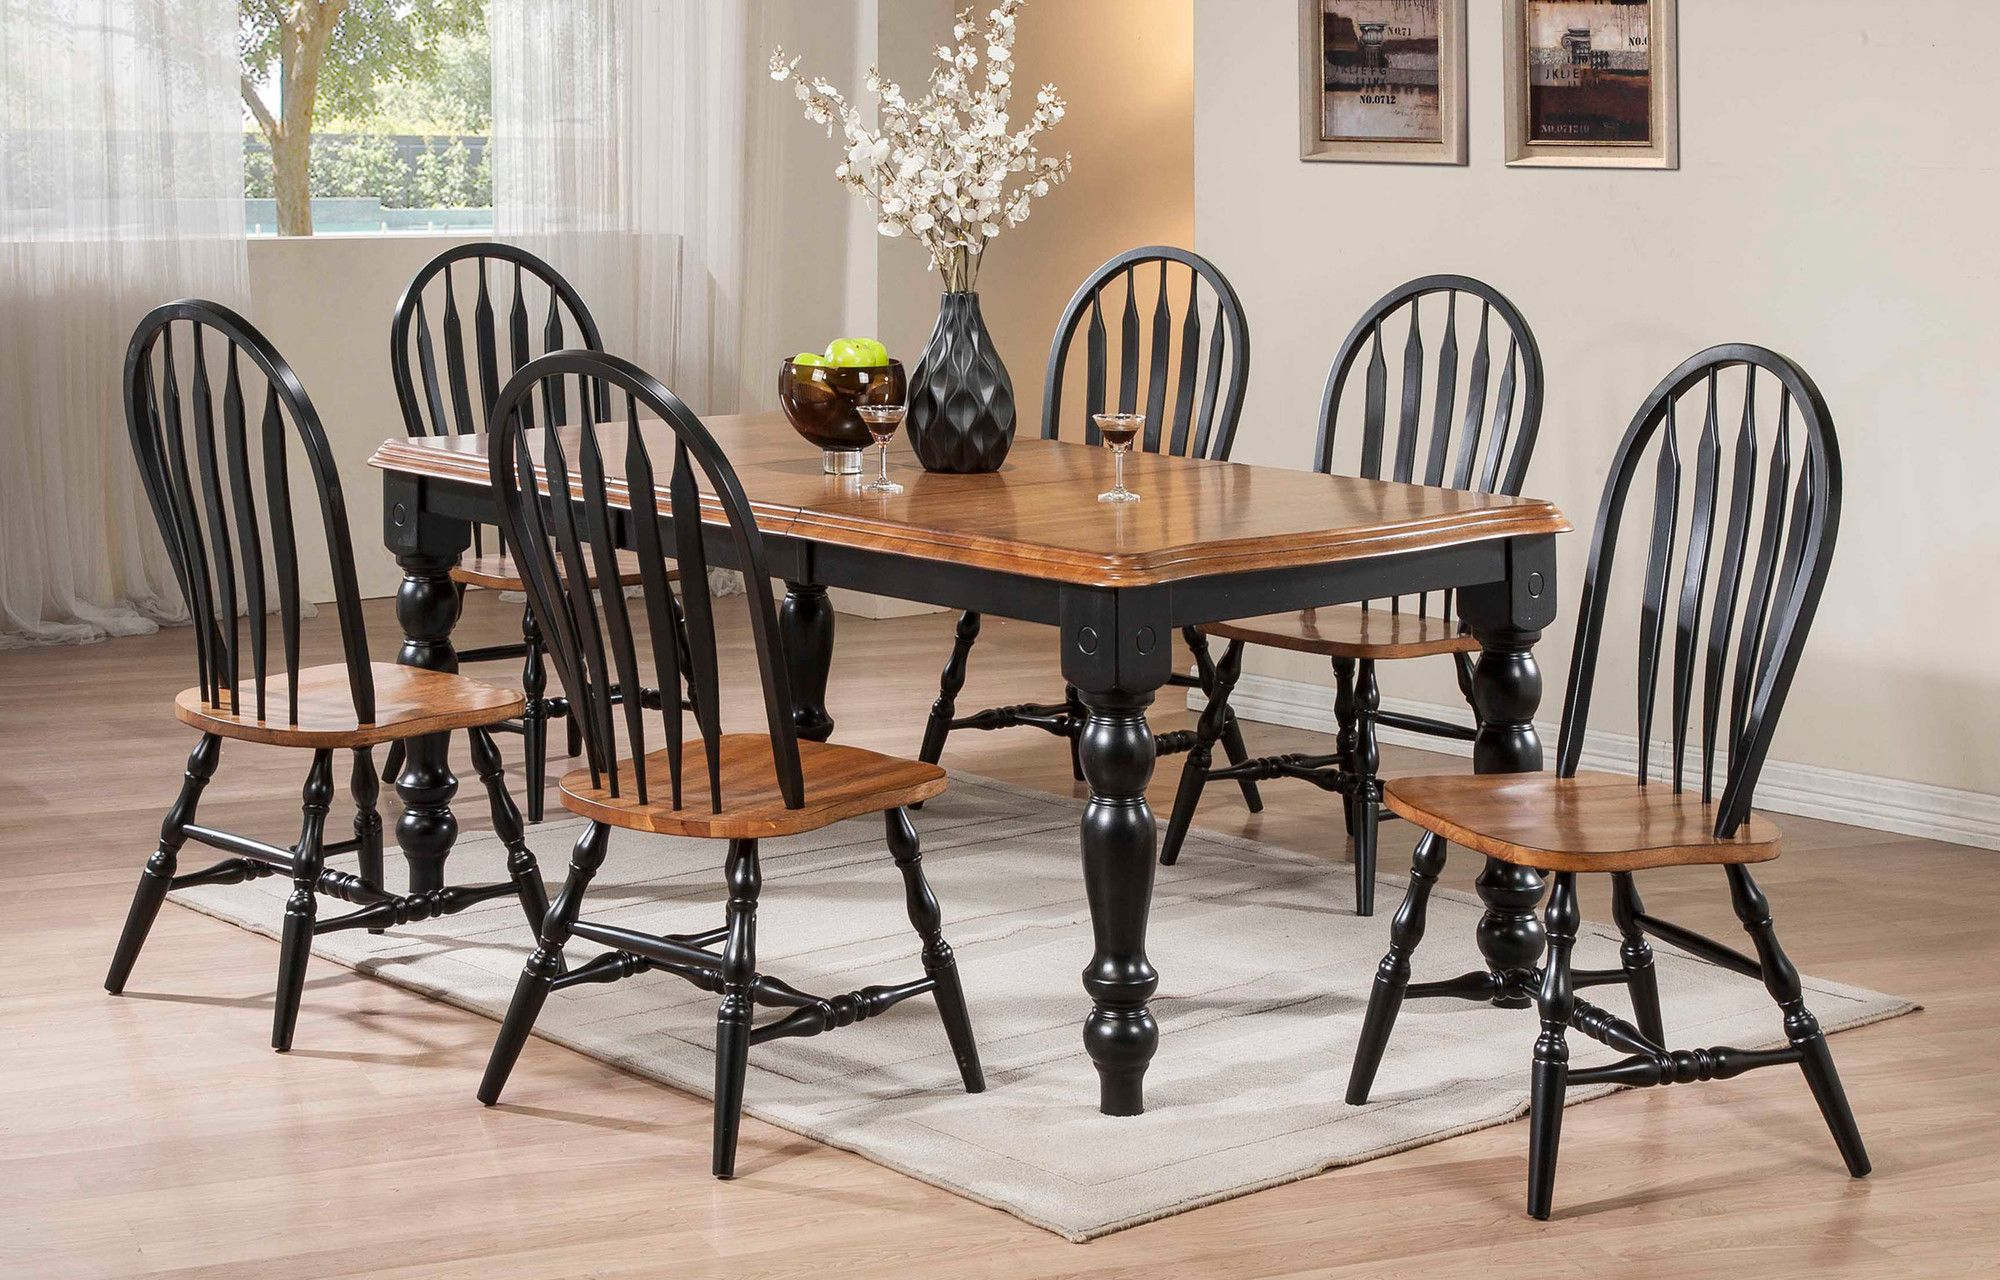 dining winners page furniture enlarge only quails click prices kitchen catalog quail run low all to